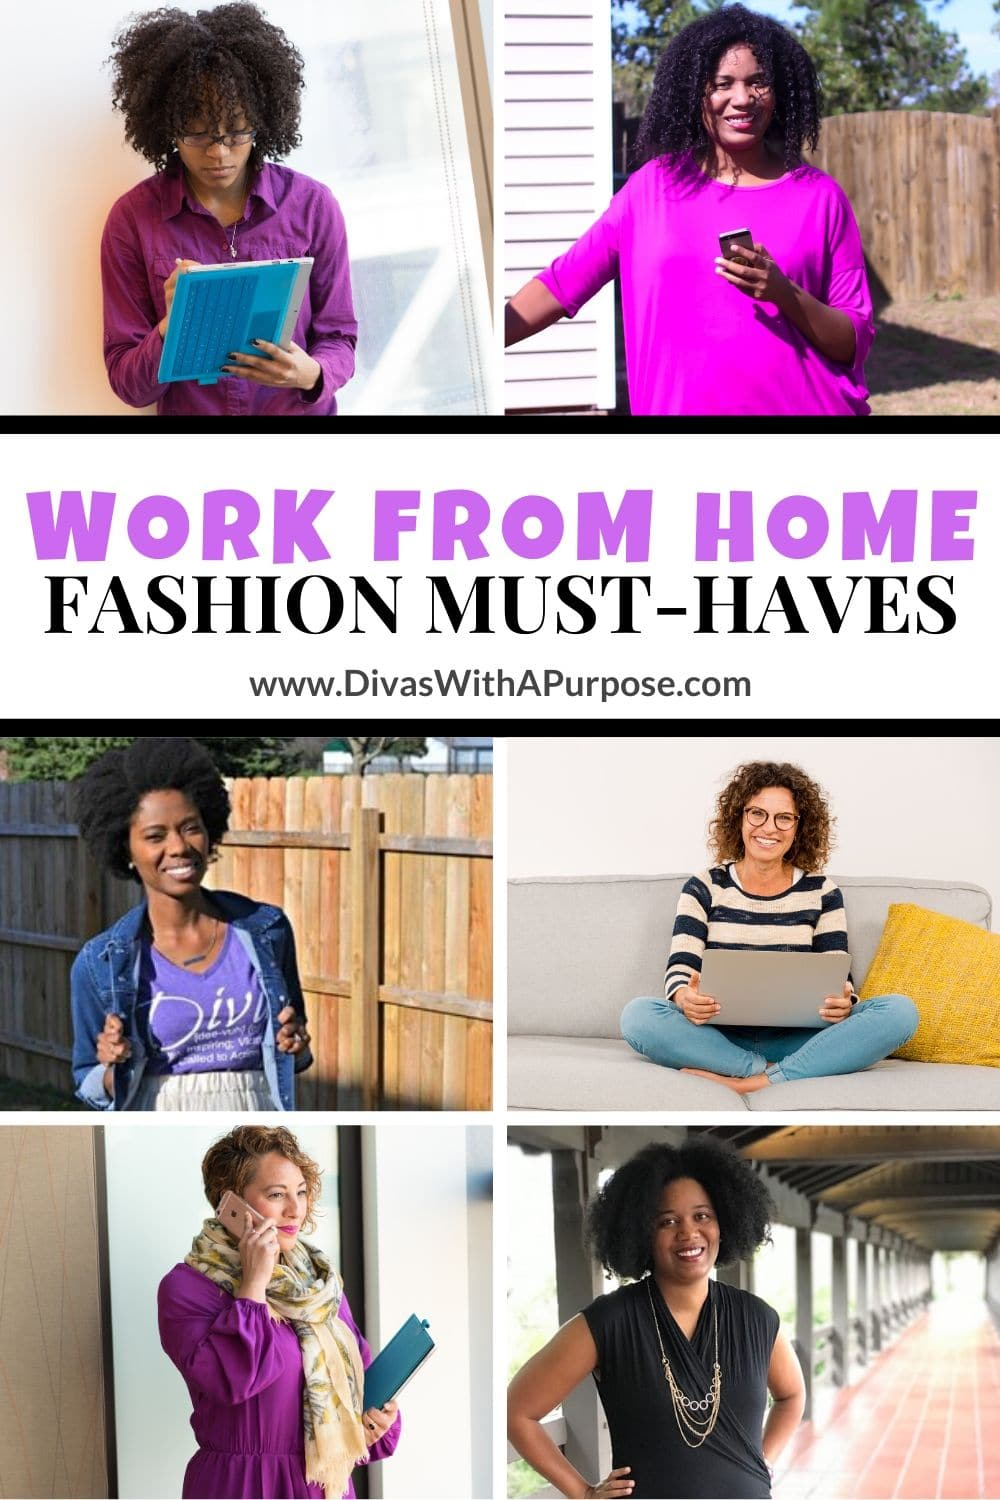 When it comes to work from home fashion find what makes you feel comfortable and confident